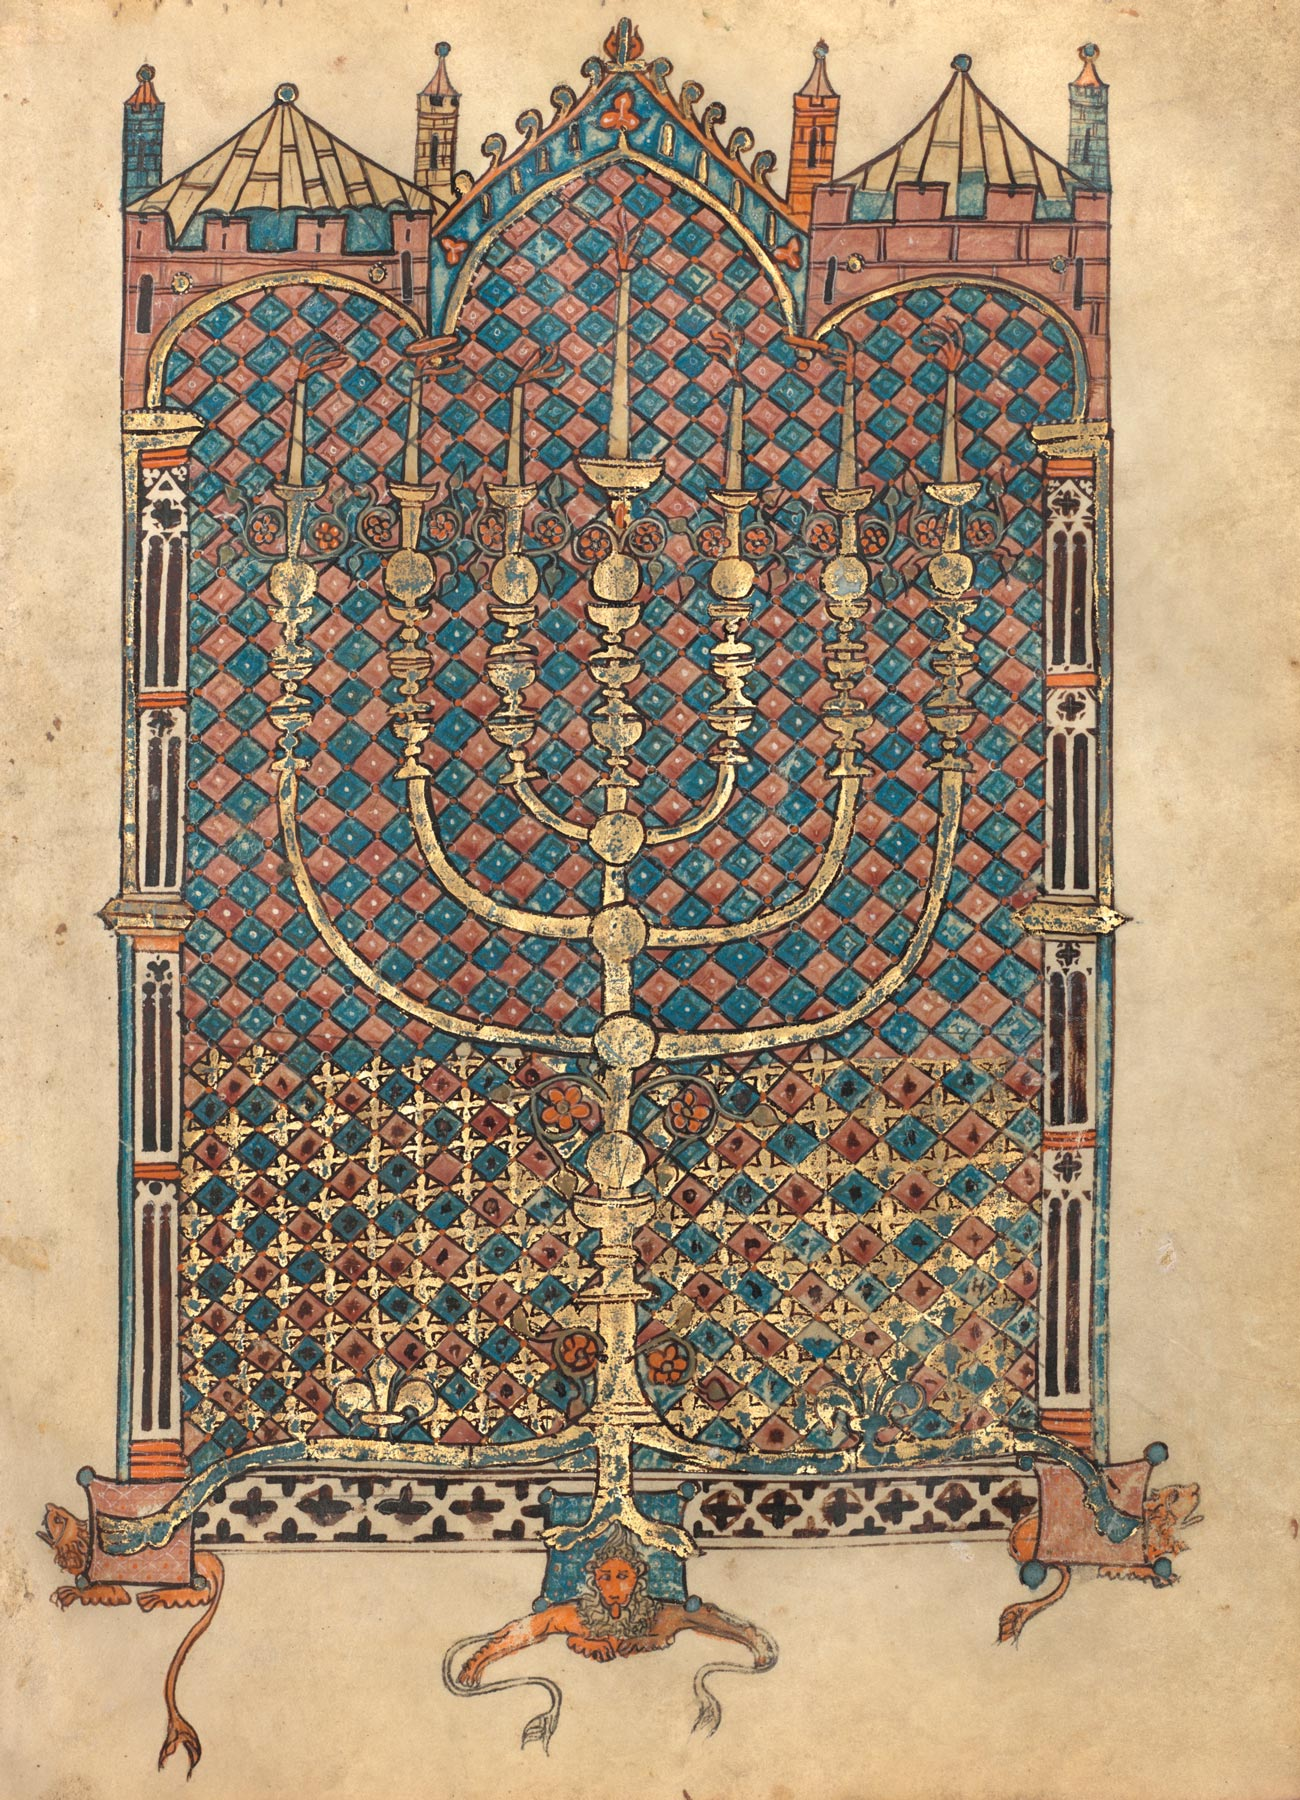 An illuminated manuscript with a large seven armed menorah. A richly patterned architectural background features columns and peaked roofs.